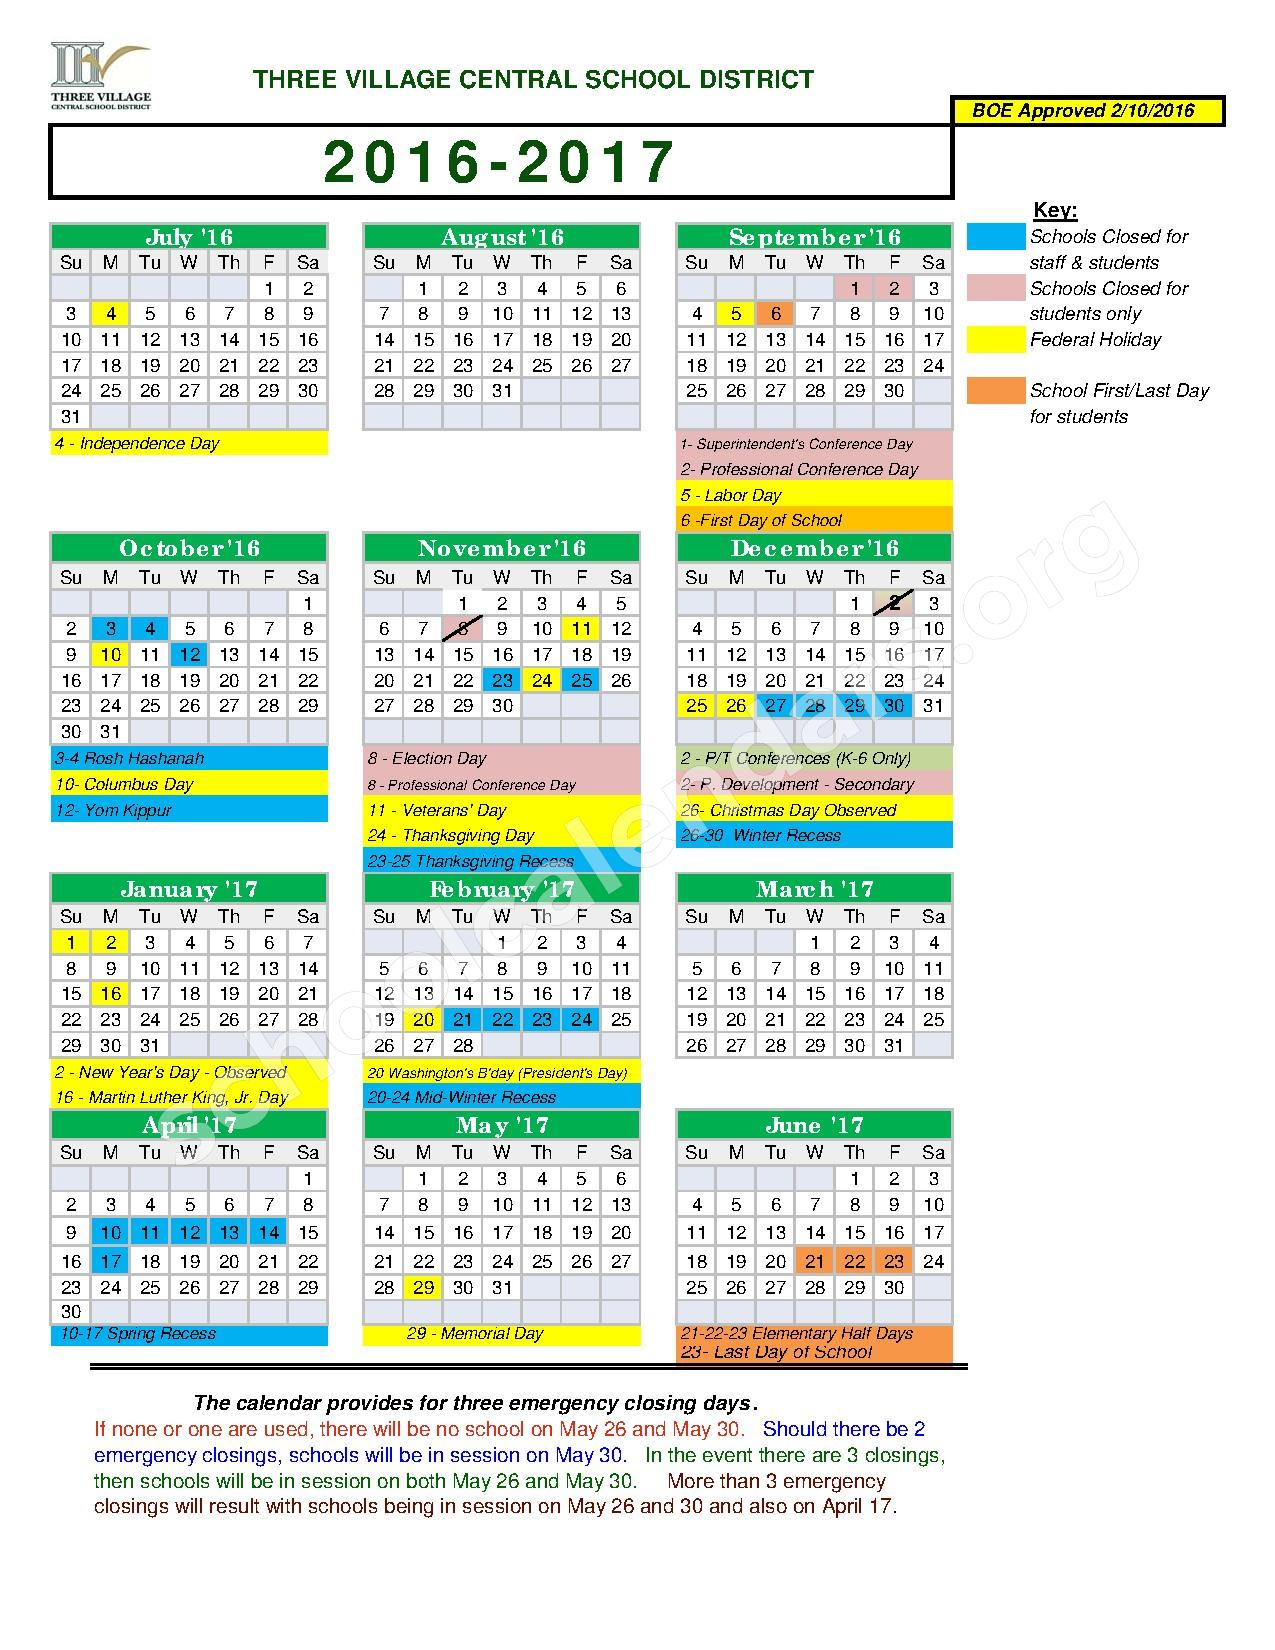 2016 - 2017 Academic Calendar – Three Village Central School District – page 1